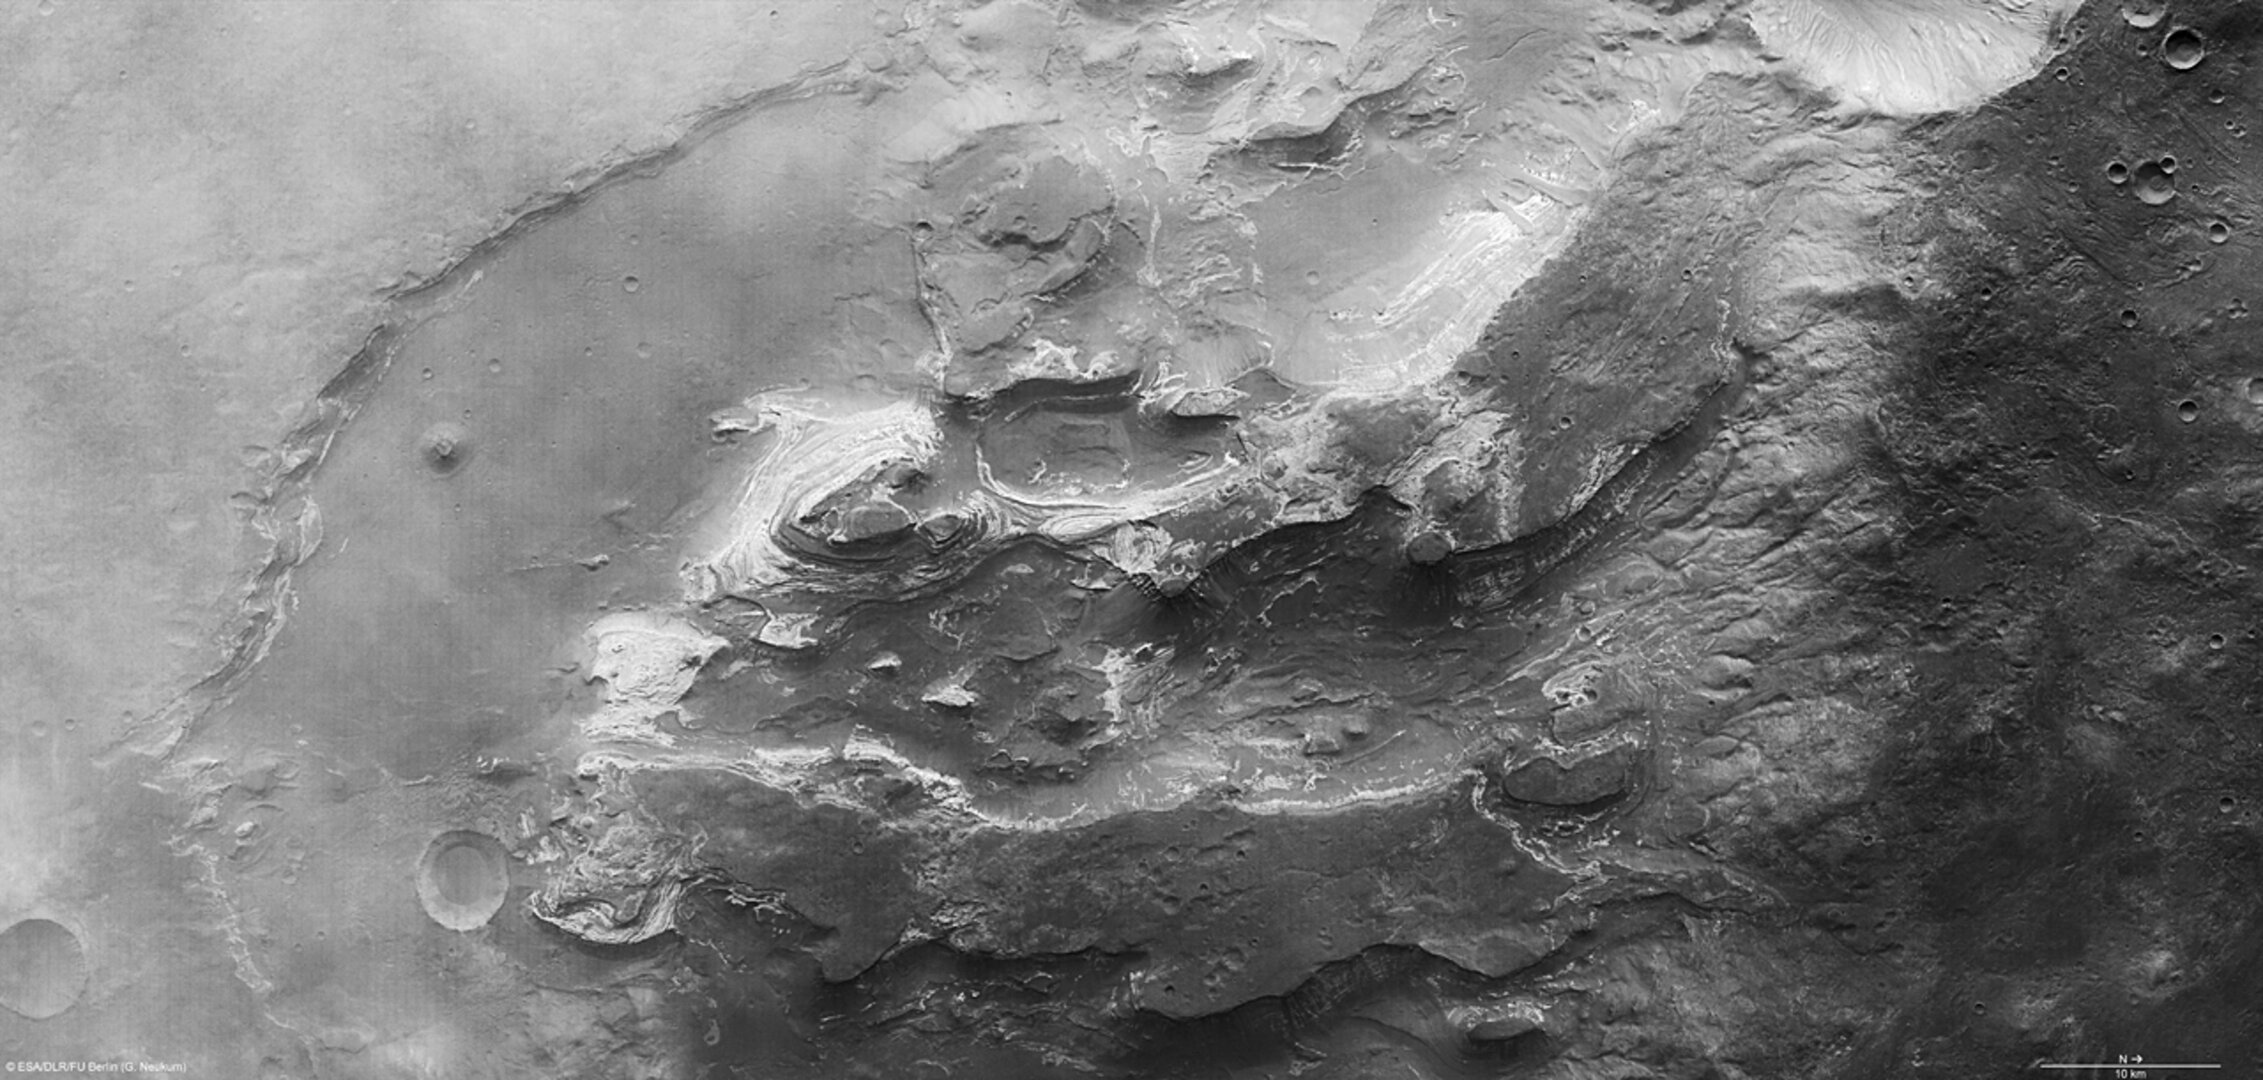 Terby crater, nadir view